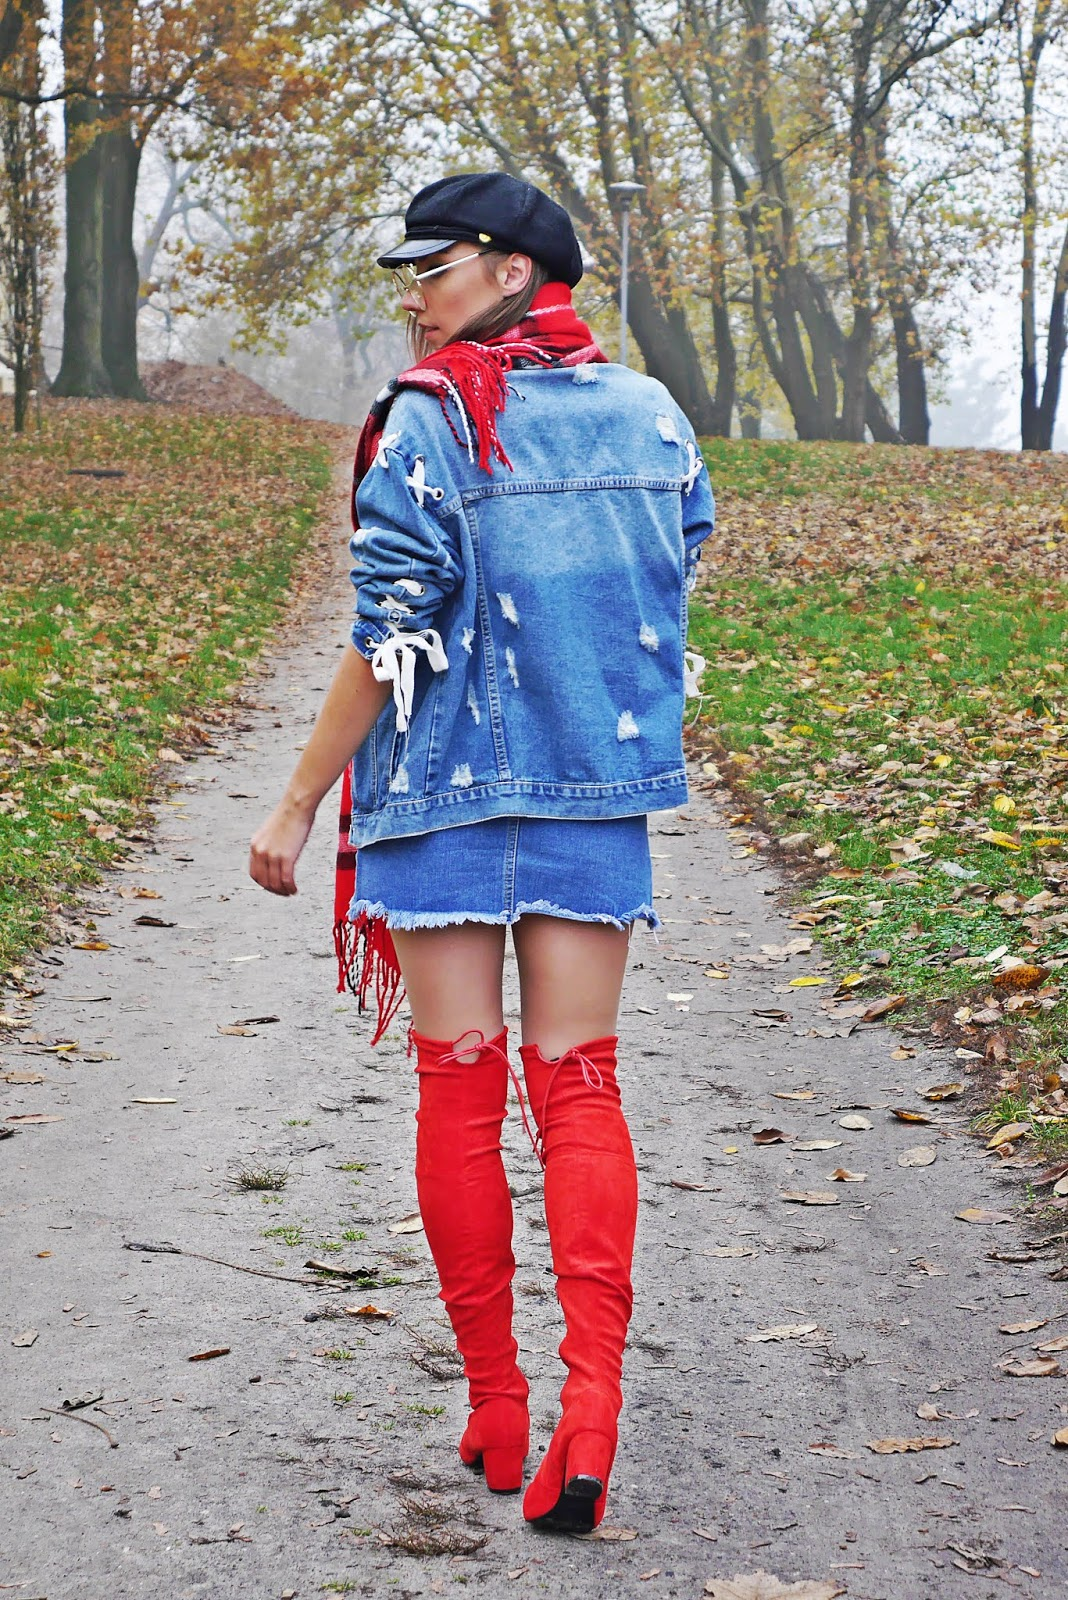 11_red_high_knee_boots_denim_jacket_outfit_karyn_blog-modowy_041118